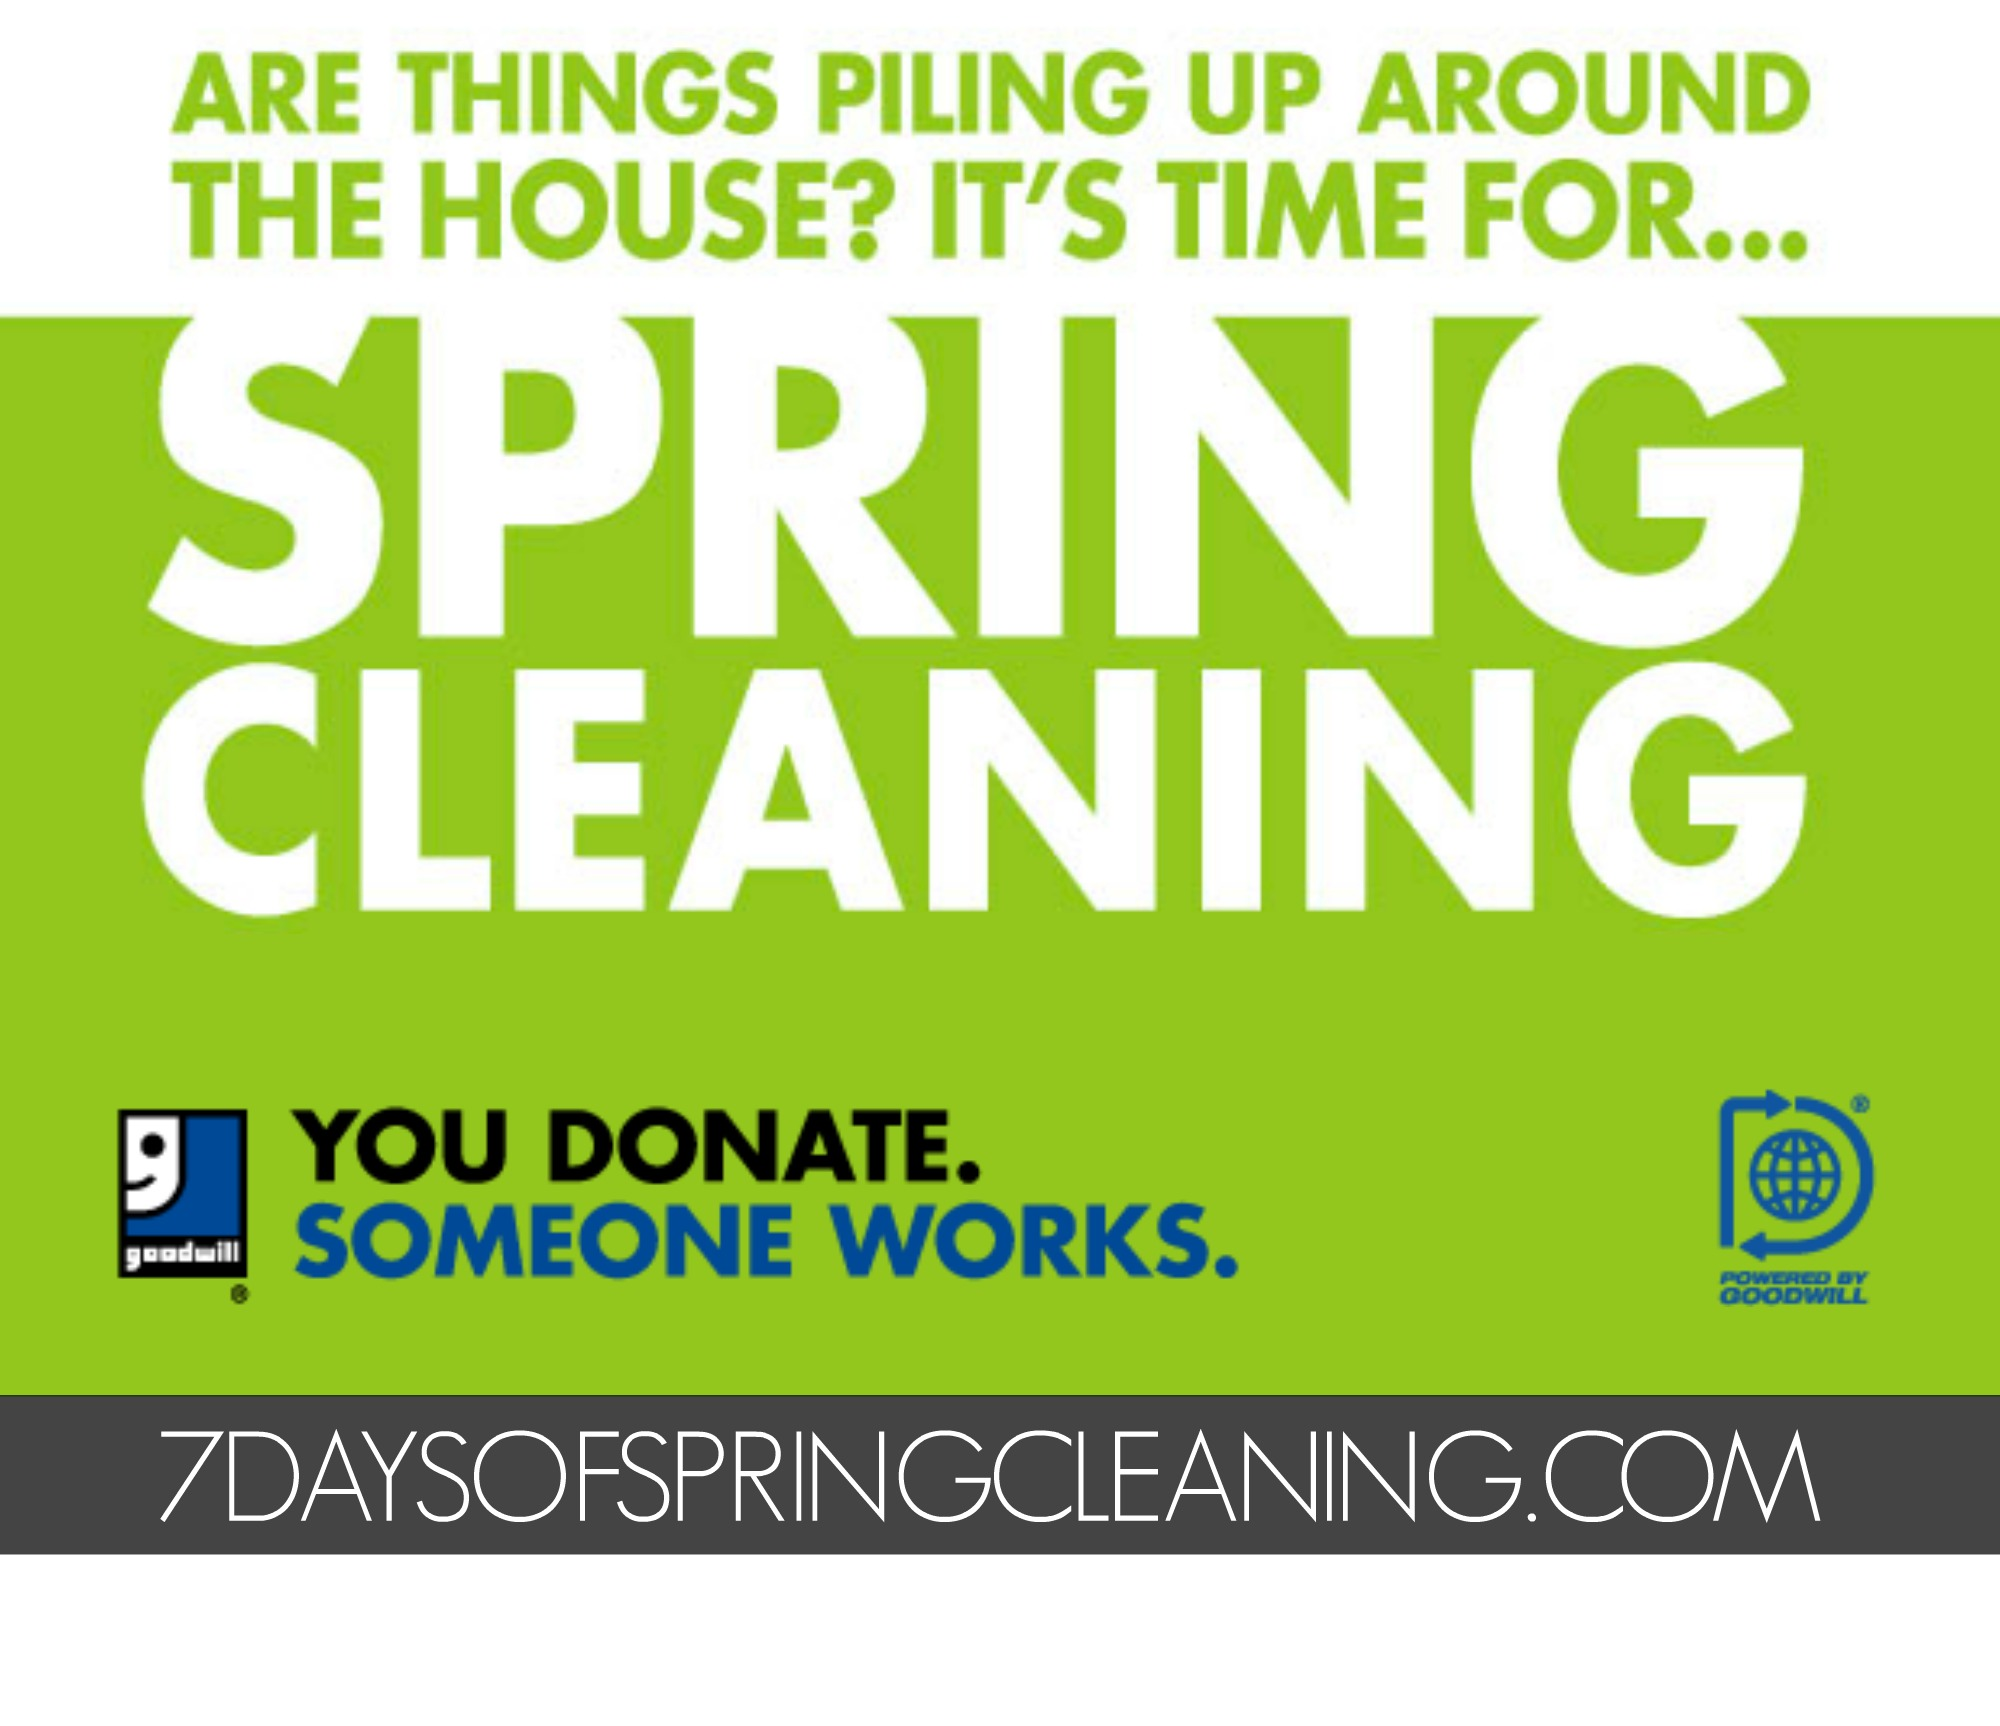 7 Days of Spring Cleaning with Goodwill EKL: Declutter, Downsize, Donate & Get Your Home Spring Ready! #7DaysOfSpringCleaning